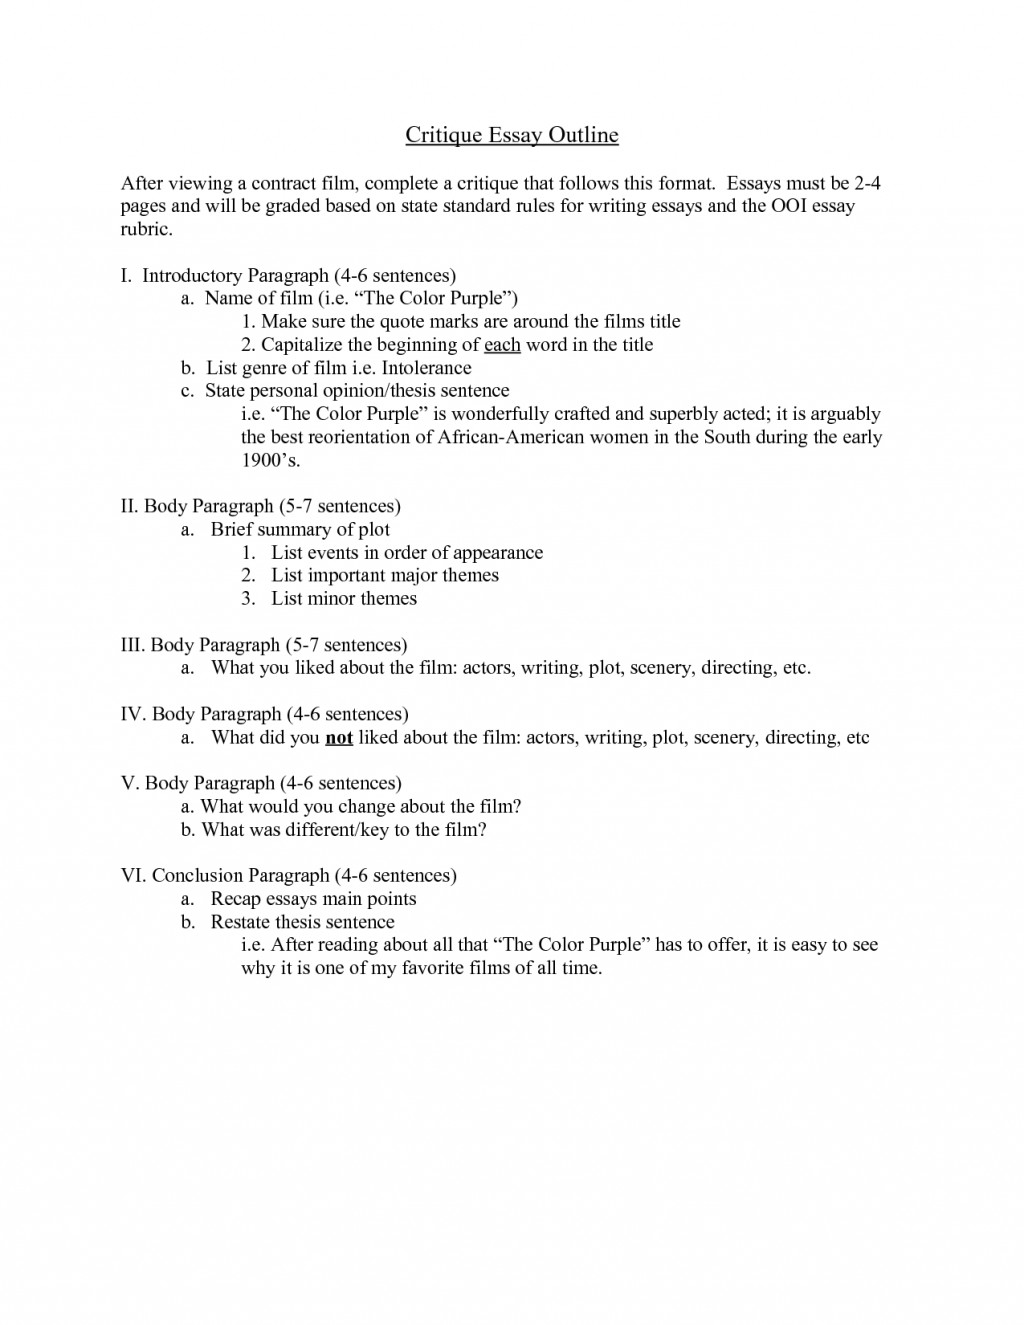 009 Critique Essay Outline Format 130080 Painting Fascinating Example Description Large